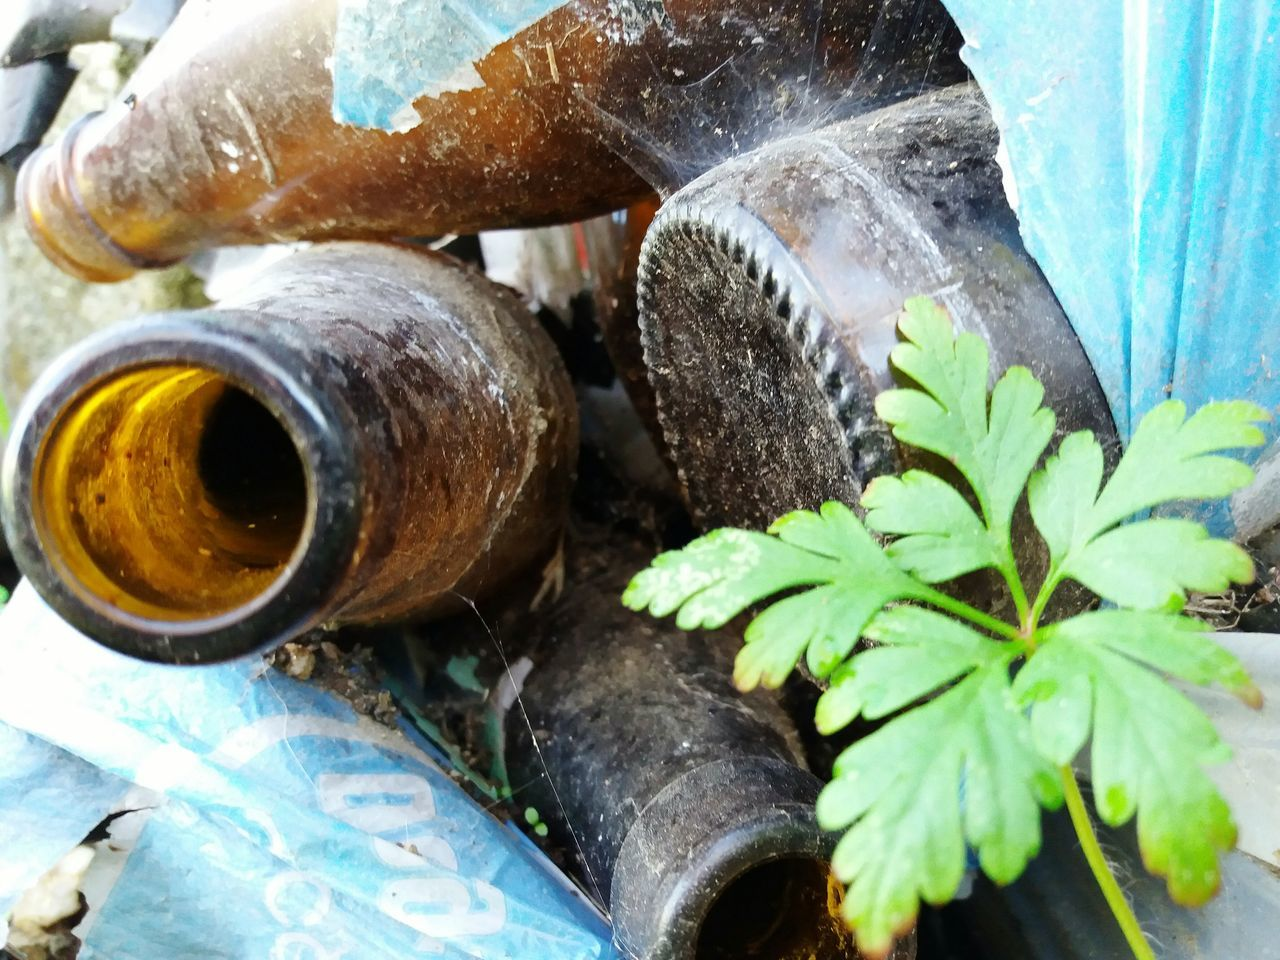 survival plant Environmental Issues Enviroment Environmental Damage Bottles Collection Garbage Plant Plant Life Leaf Close-up No People Outdoors Glass Bottle Green Leaf